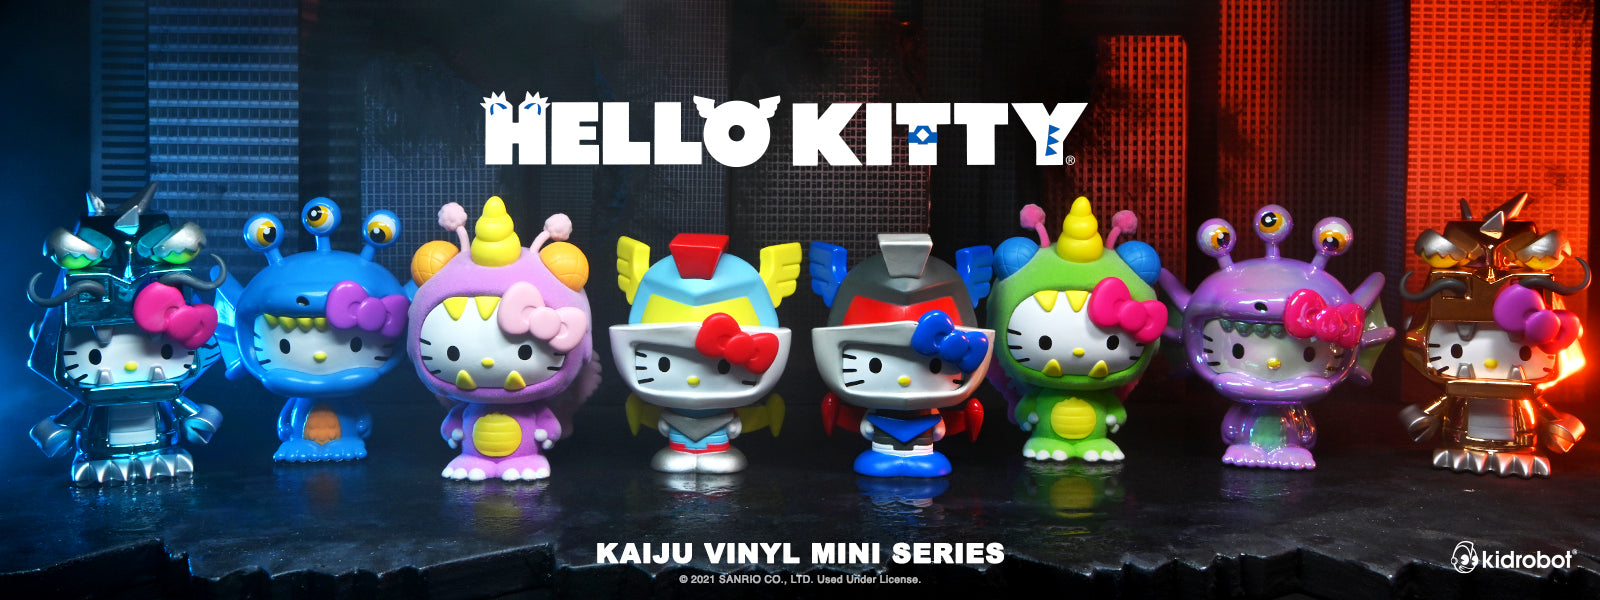 Kidrobot x Hello Kitty Kaiju Mini Figure Series